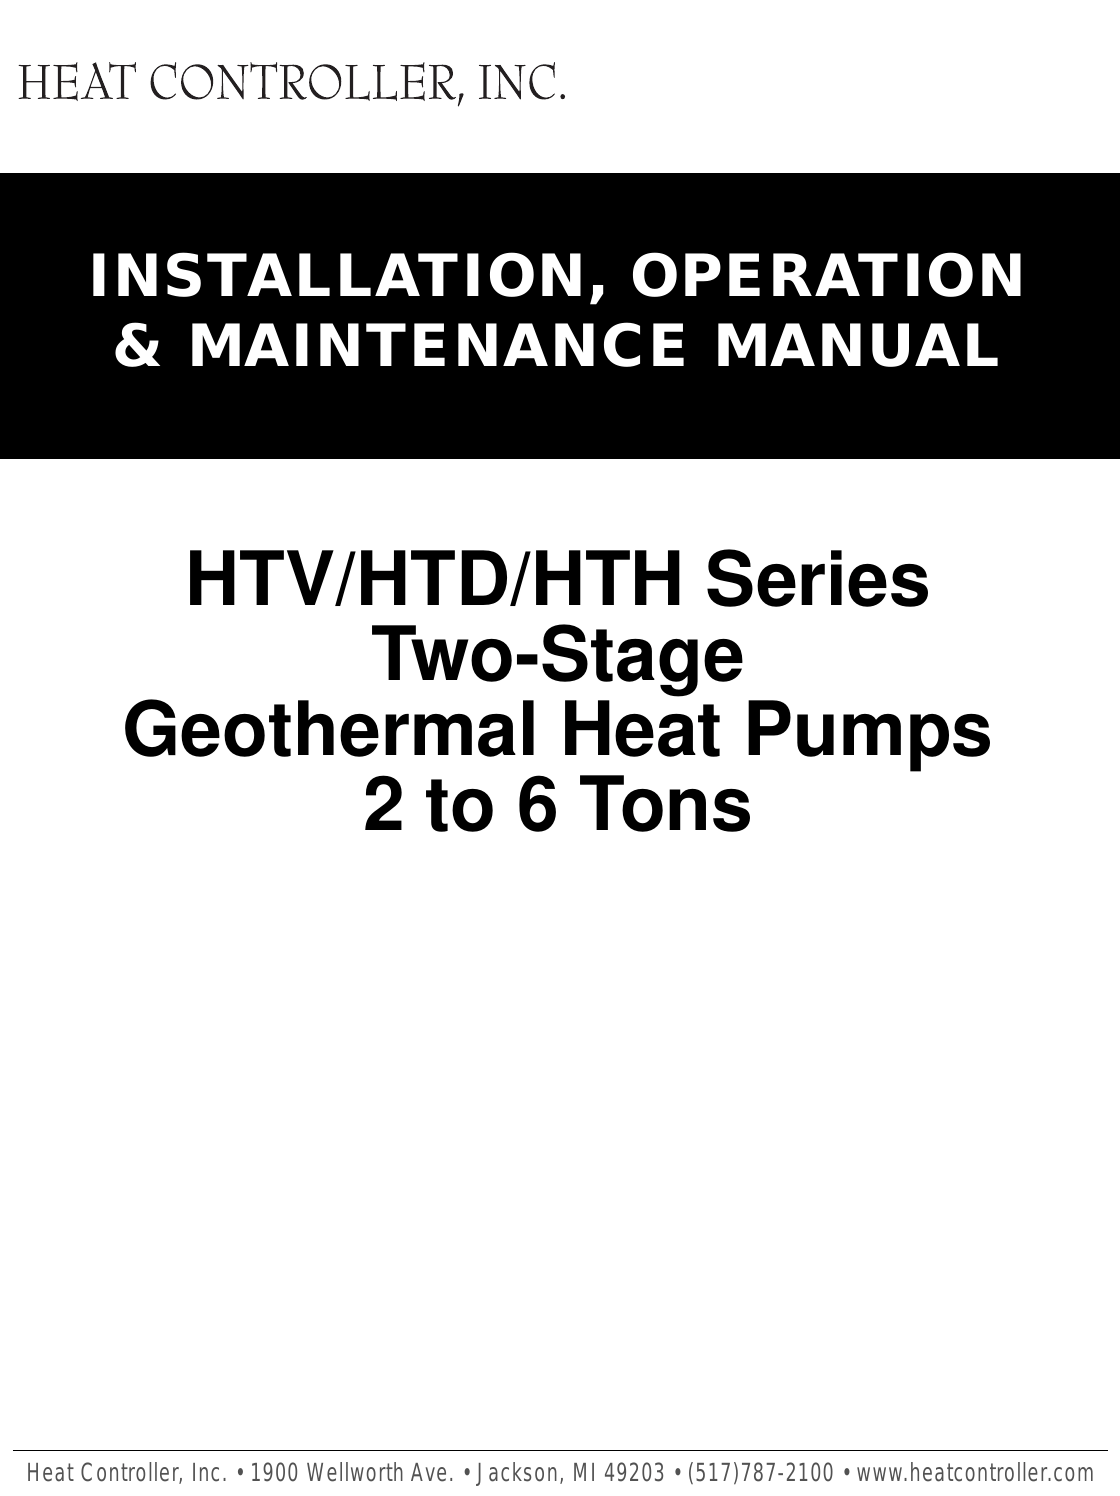 Heat Controller Geomax 2 Two Stage Geothermal Quick Start Guide